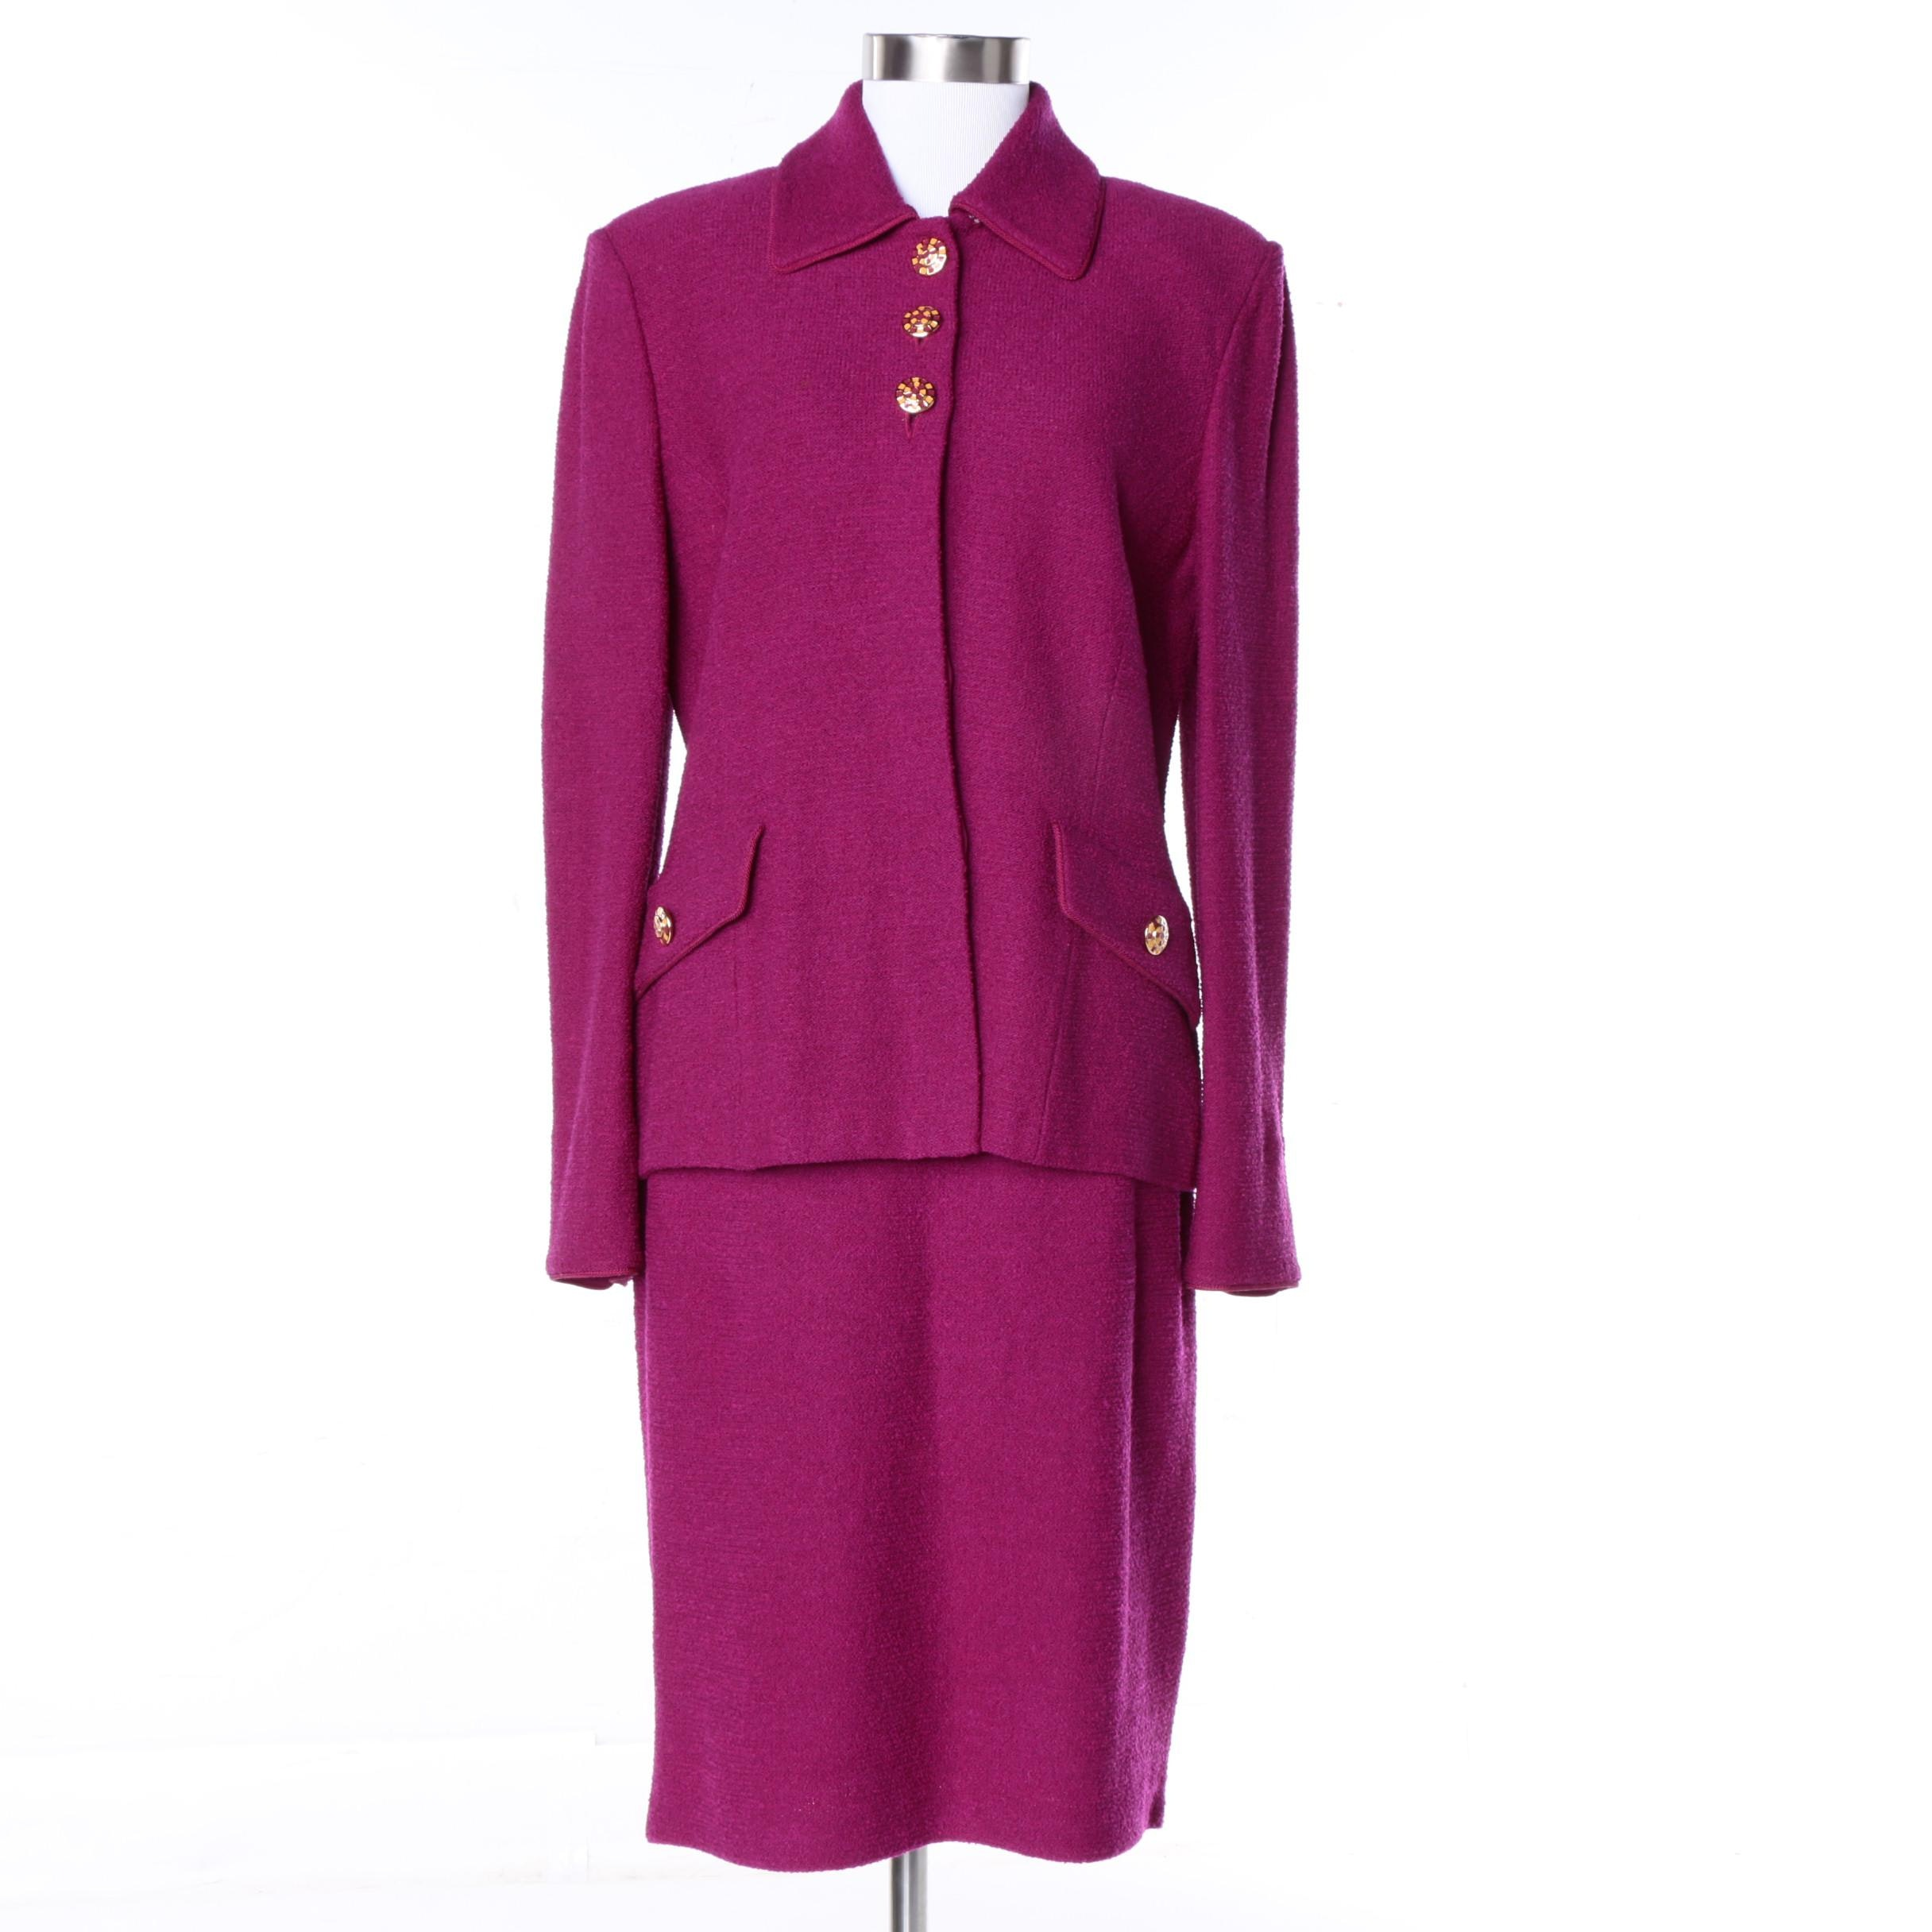 St John Collection by Marie Gray Knit Skirt Suit in Fuschia